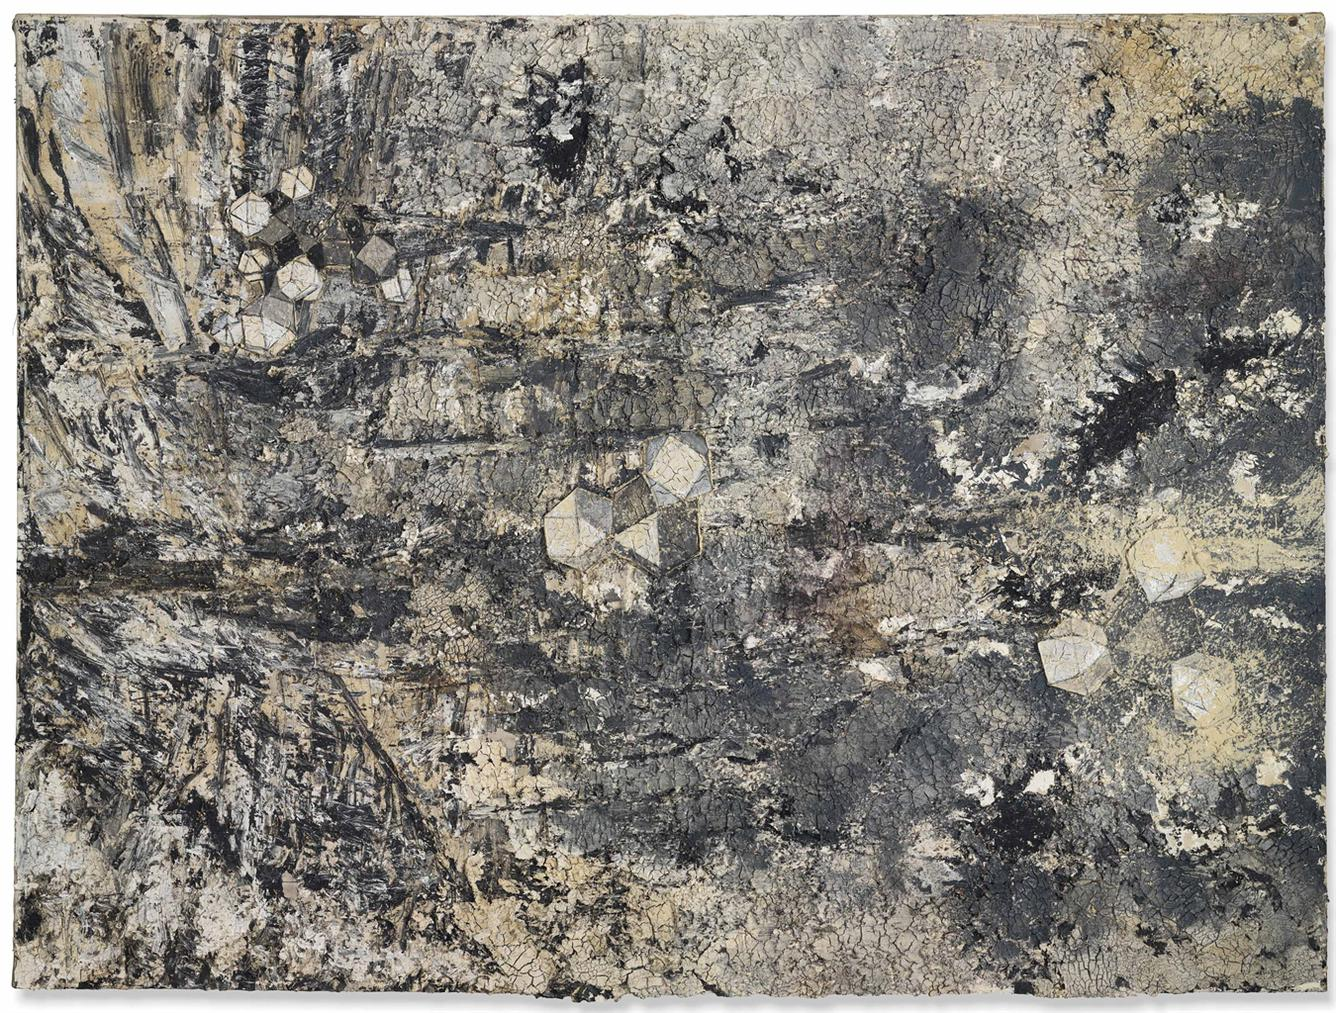 Anselm Kiefer-Am Anfang (In The Beginning)-1998